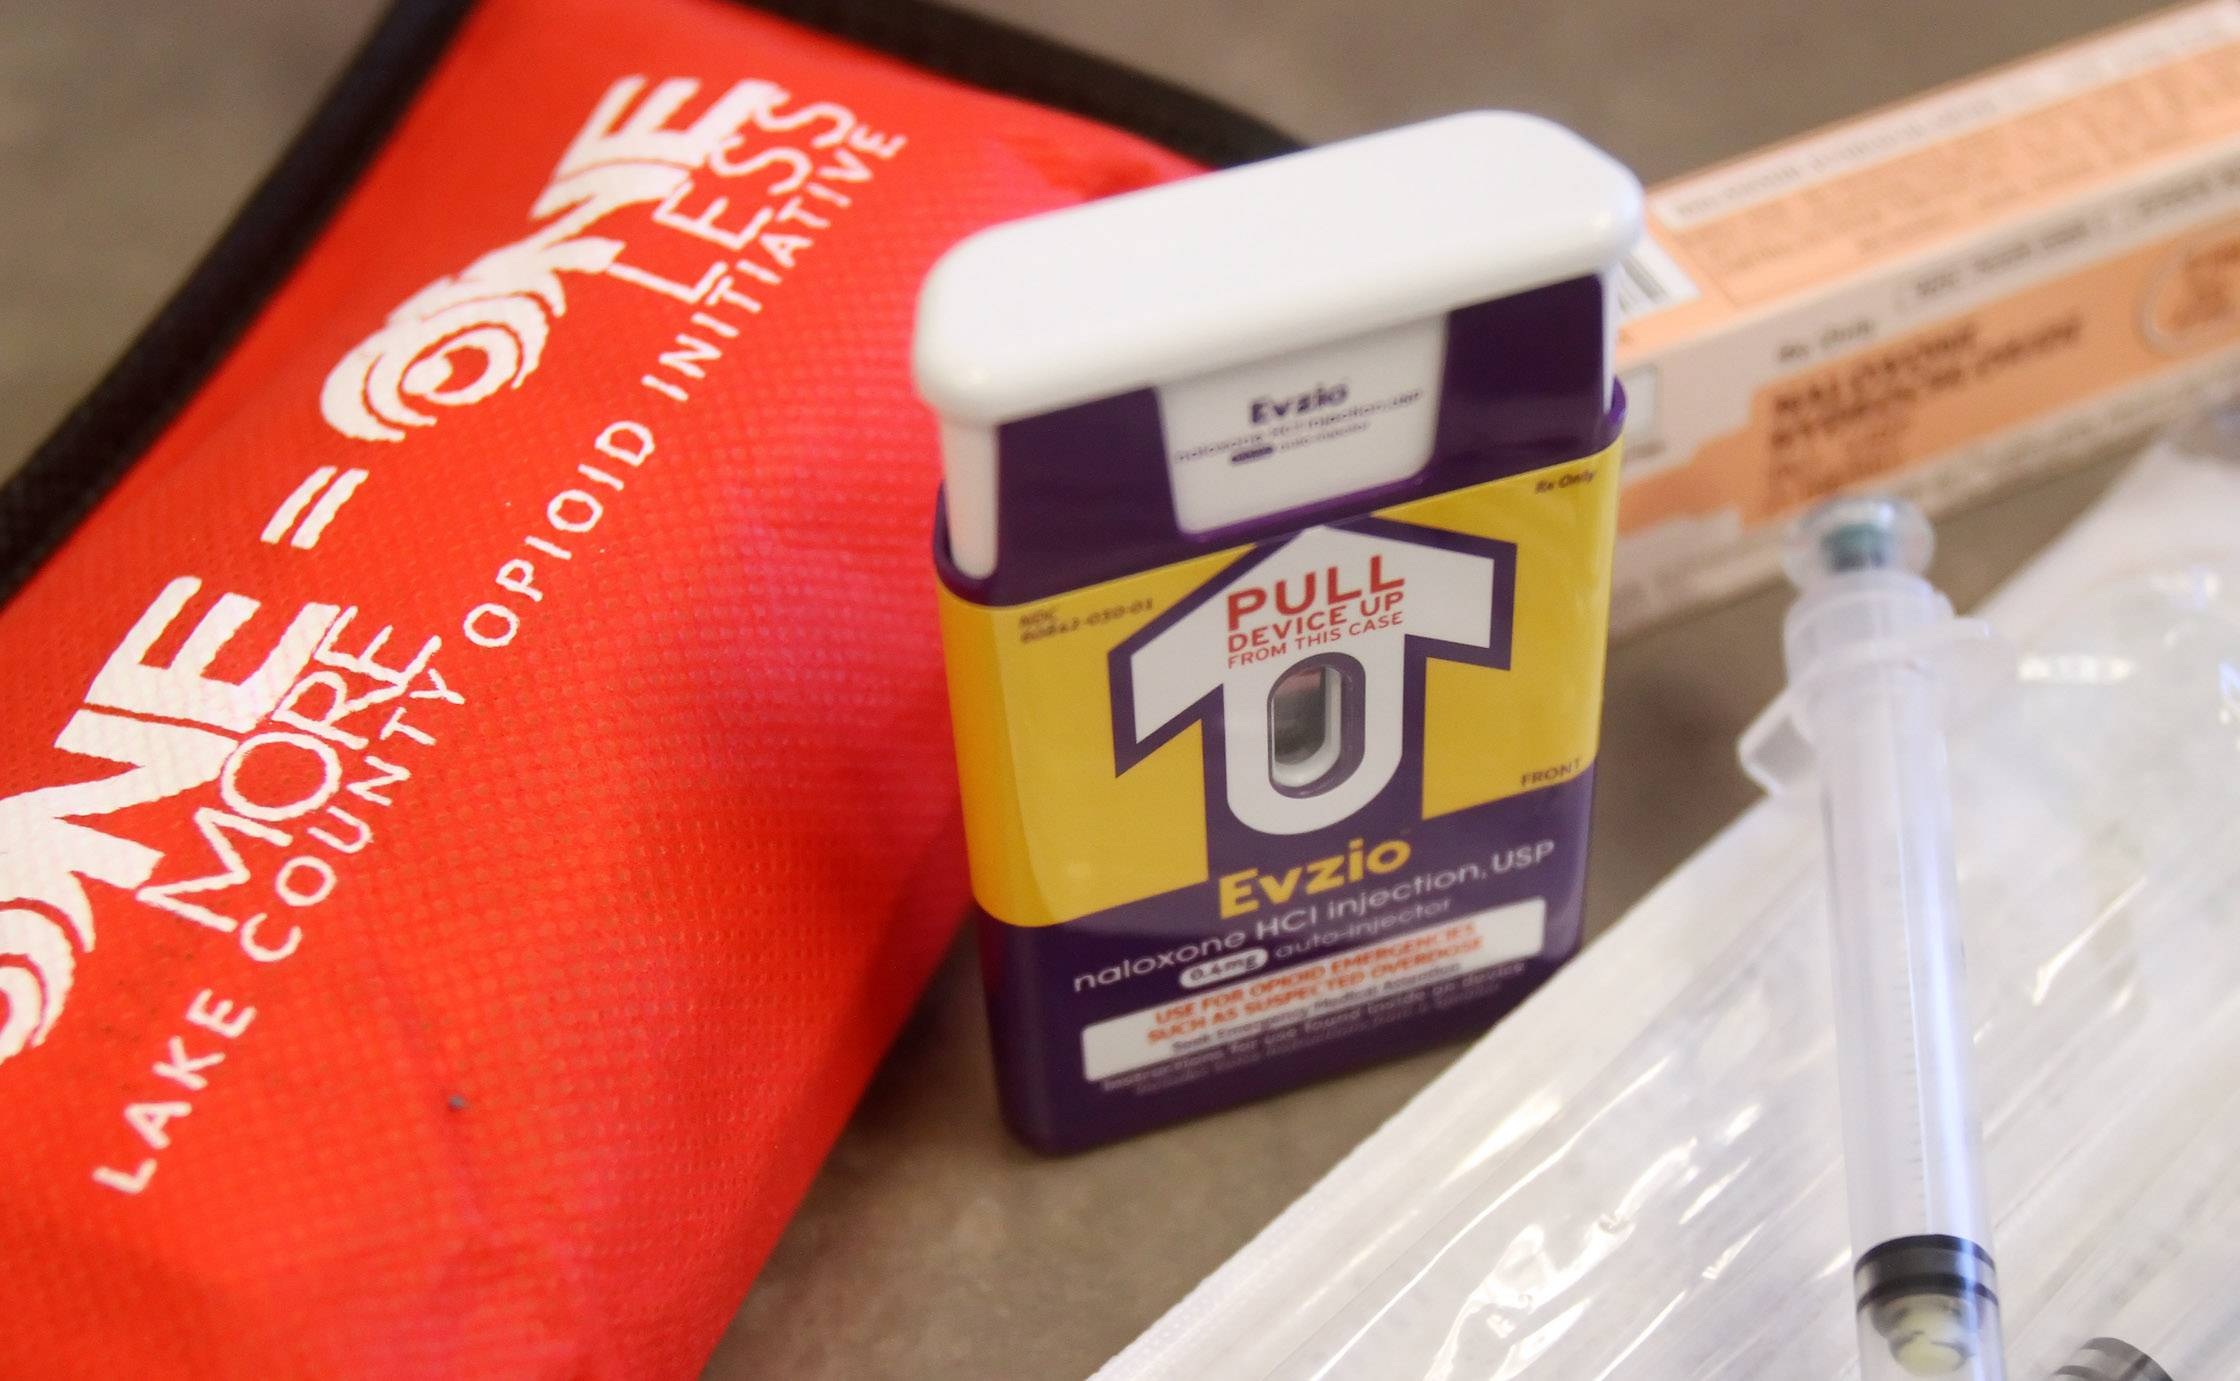 There are different ways to give overdose victims naloxone, a nonaddictive drug that counteracts the effects of opiates, including heroin. Lake County State's Attorney Mike Nerheim announced the Lake County Naloxone Police Program on Tuesday.